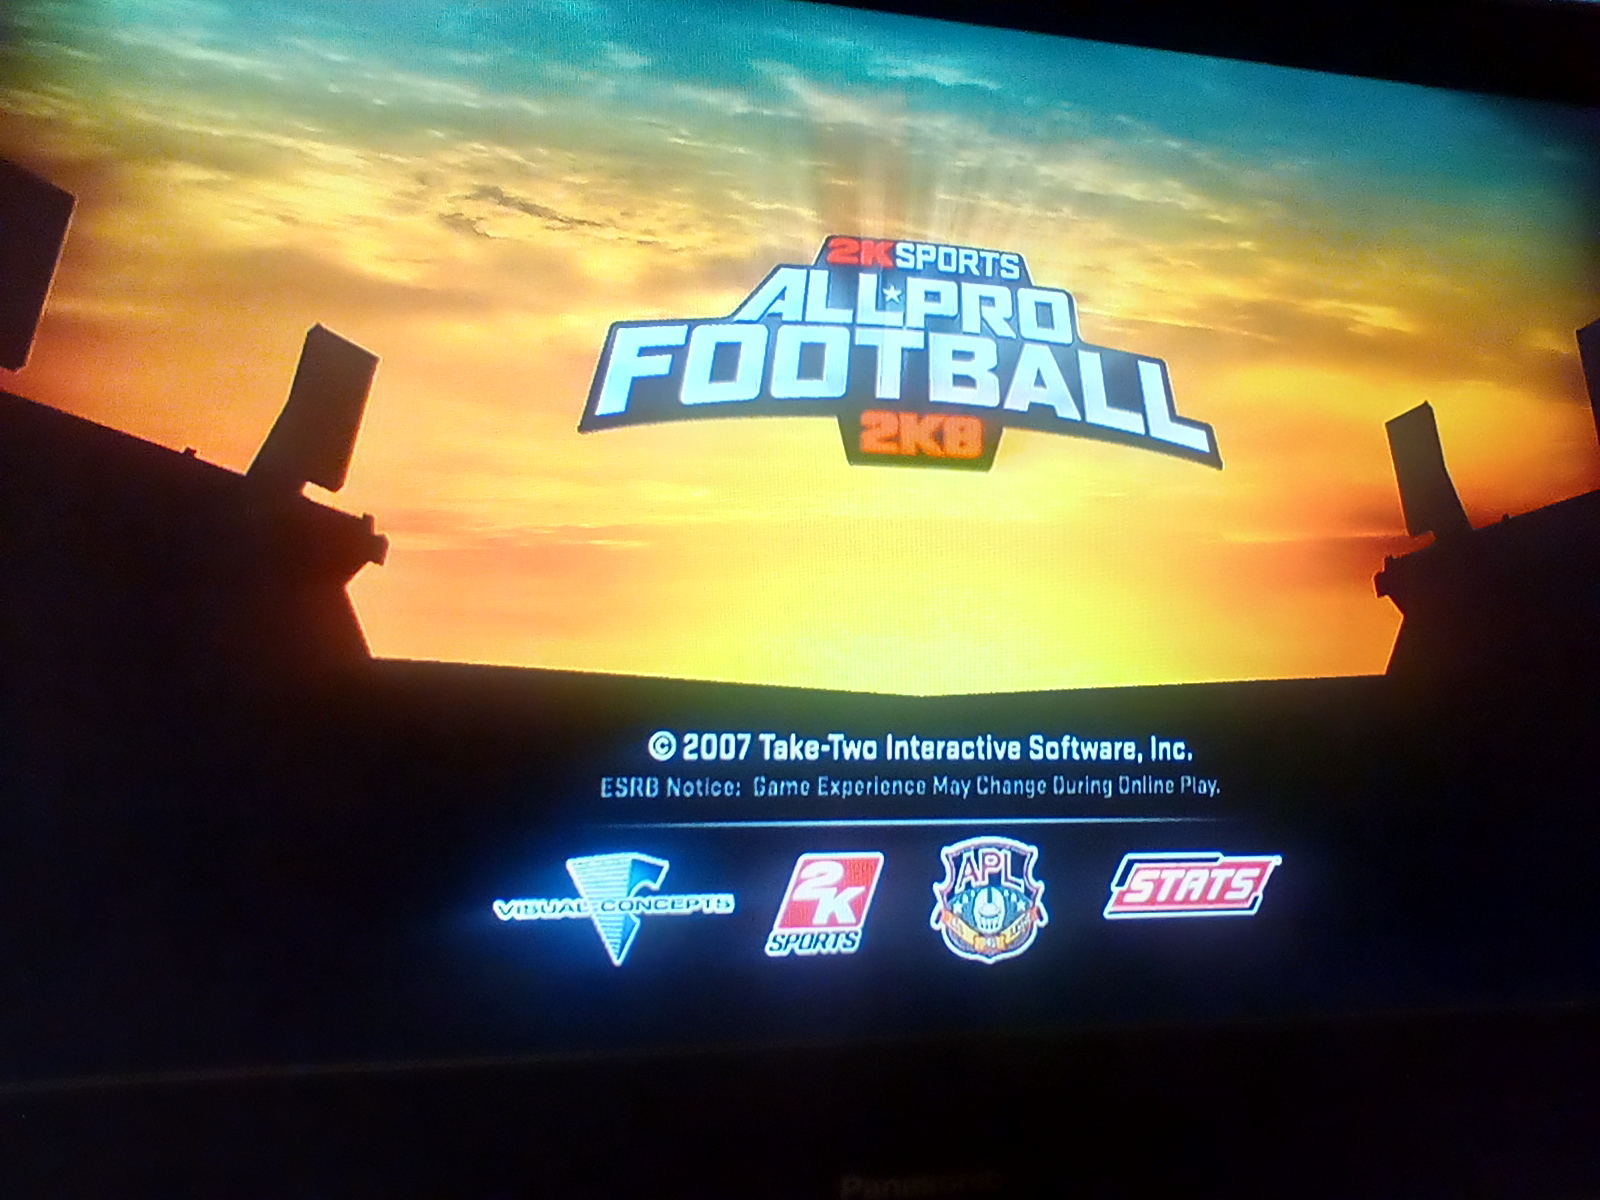 JML101582: All Pro Football 2K8 [Point Differential] (Playstation 3) -2 points on 2020-07-27 23:15:50